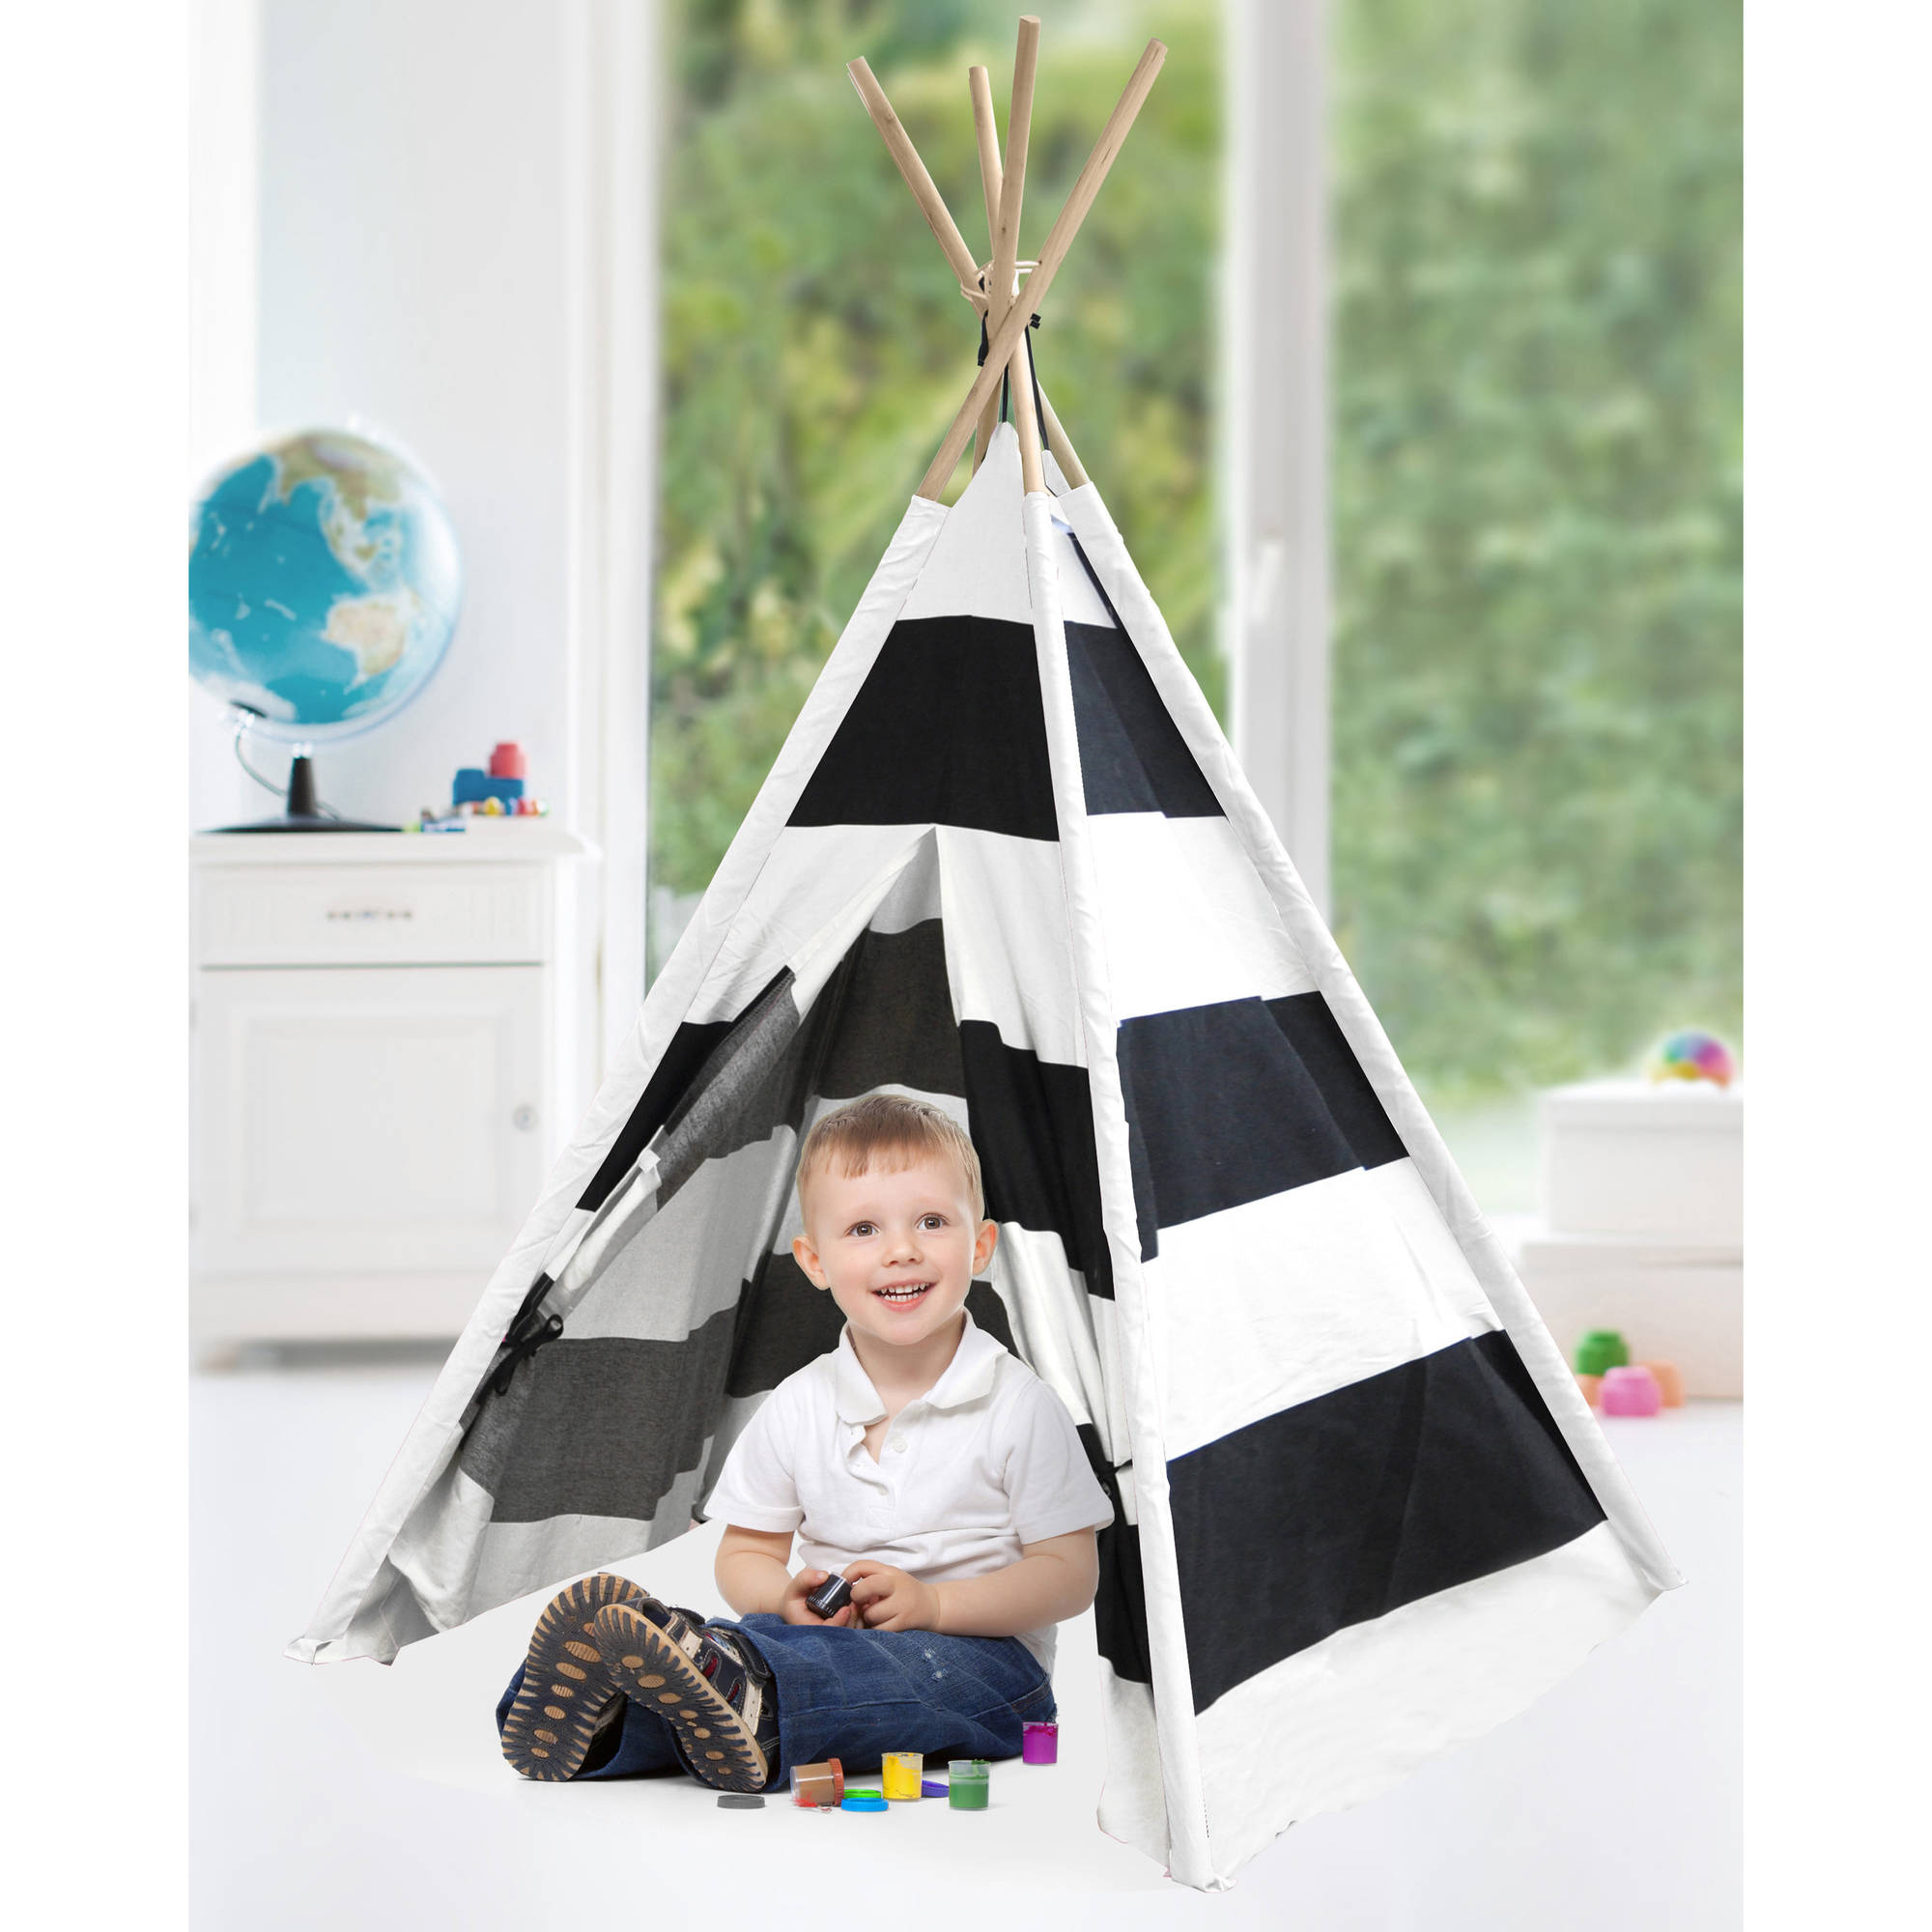 American Kids Awesome Tee-Pee Tent Rugby Stripe  sc 1 st  Walmart.com & American Kids Awesome Tee-Pee Tent Rugby Stripe - Walmart.com